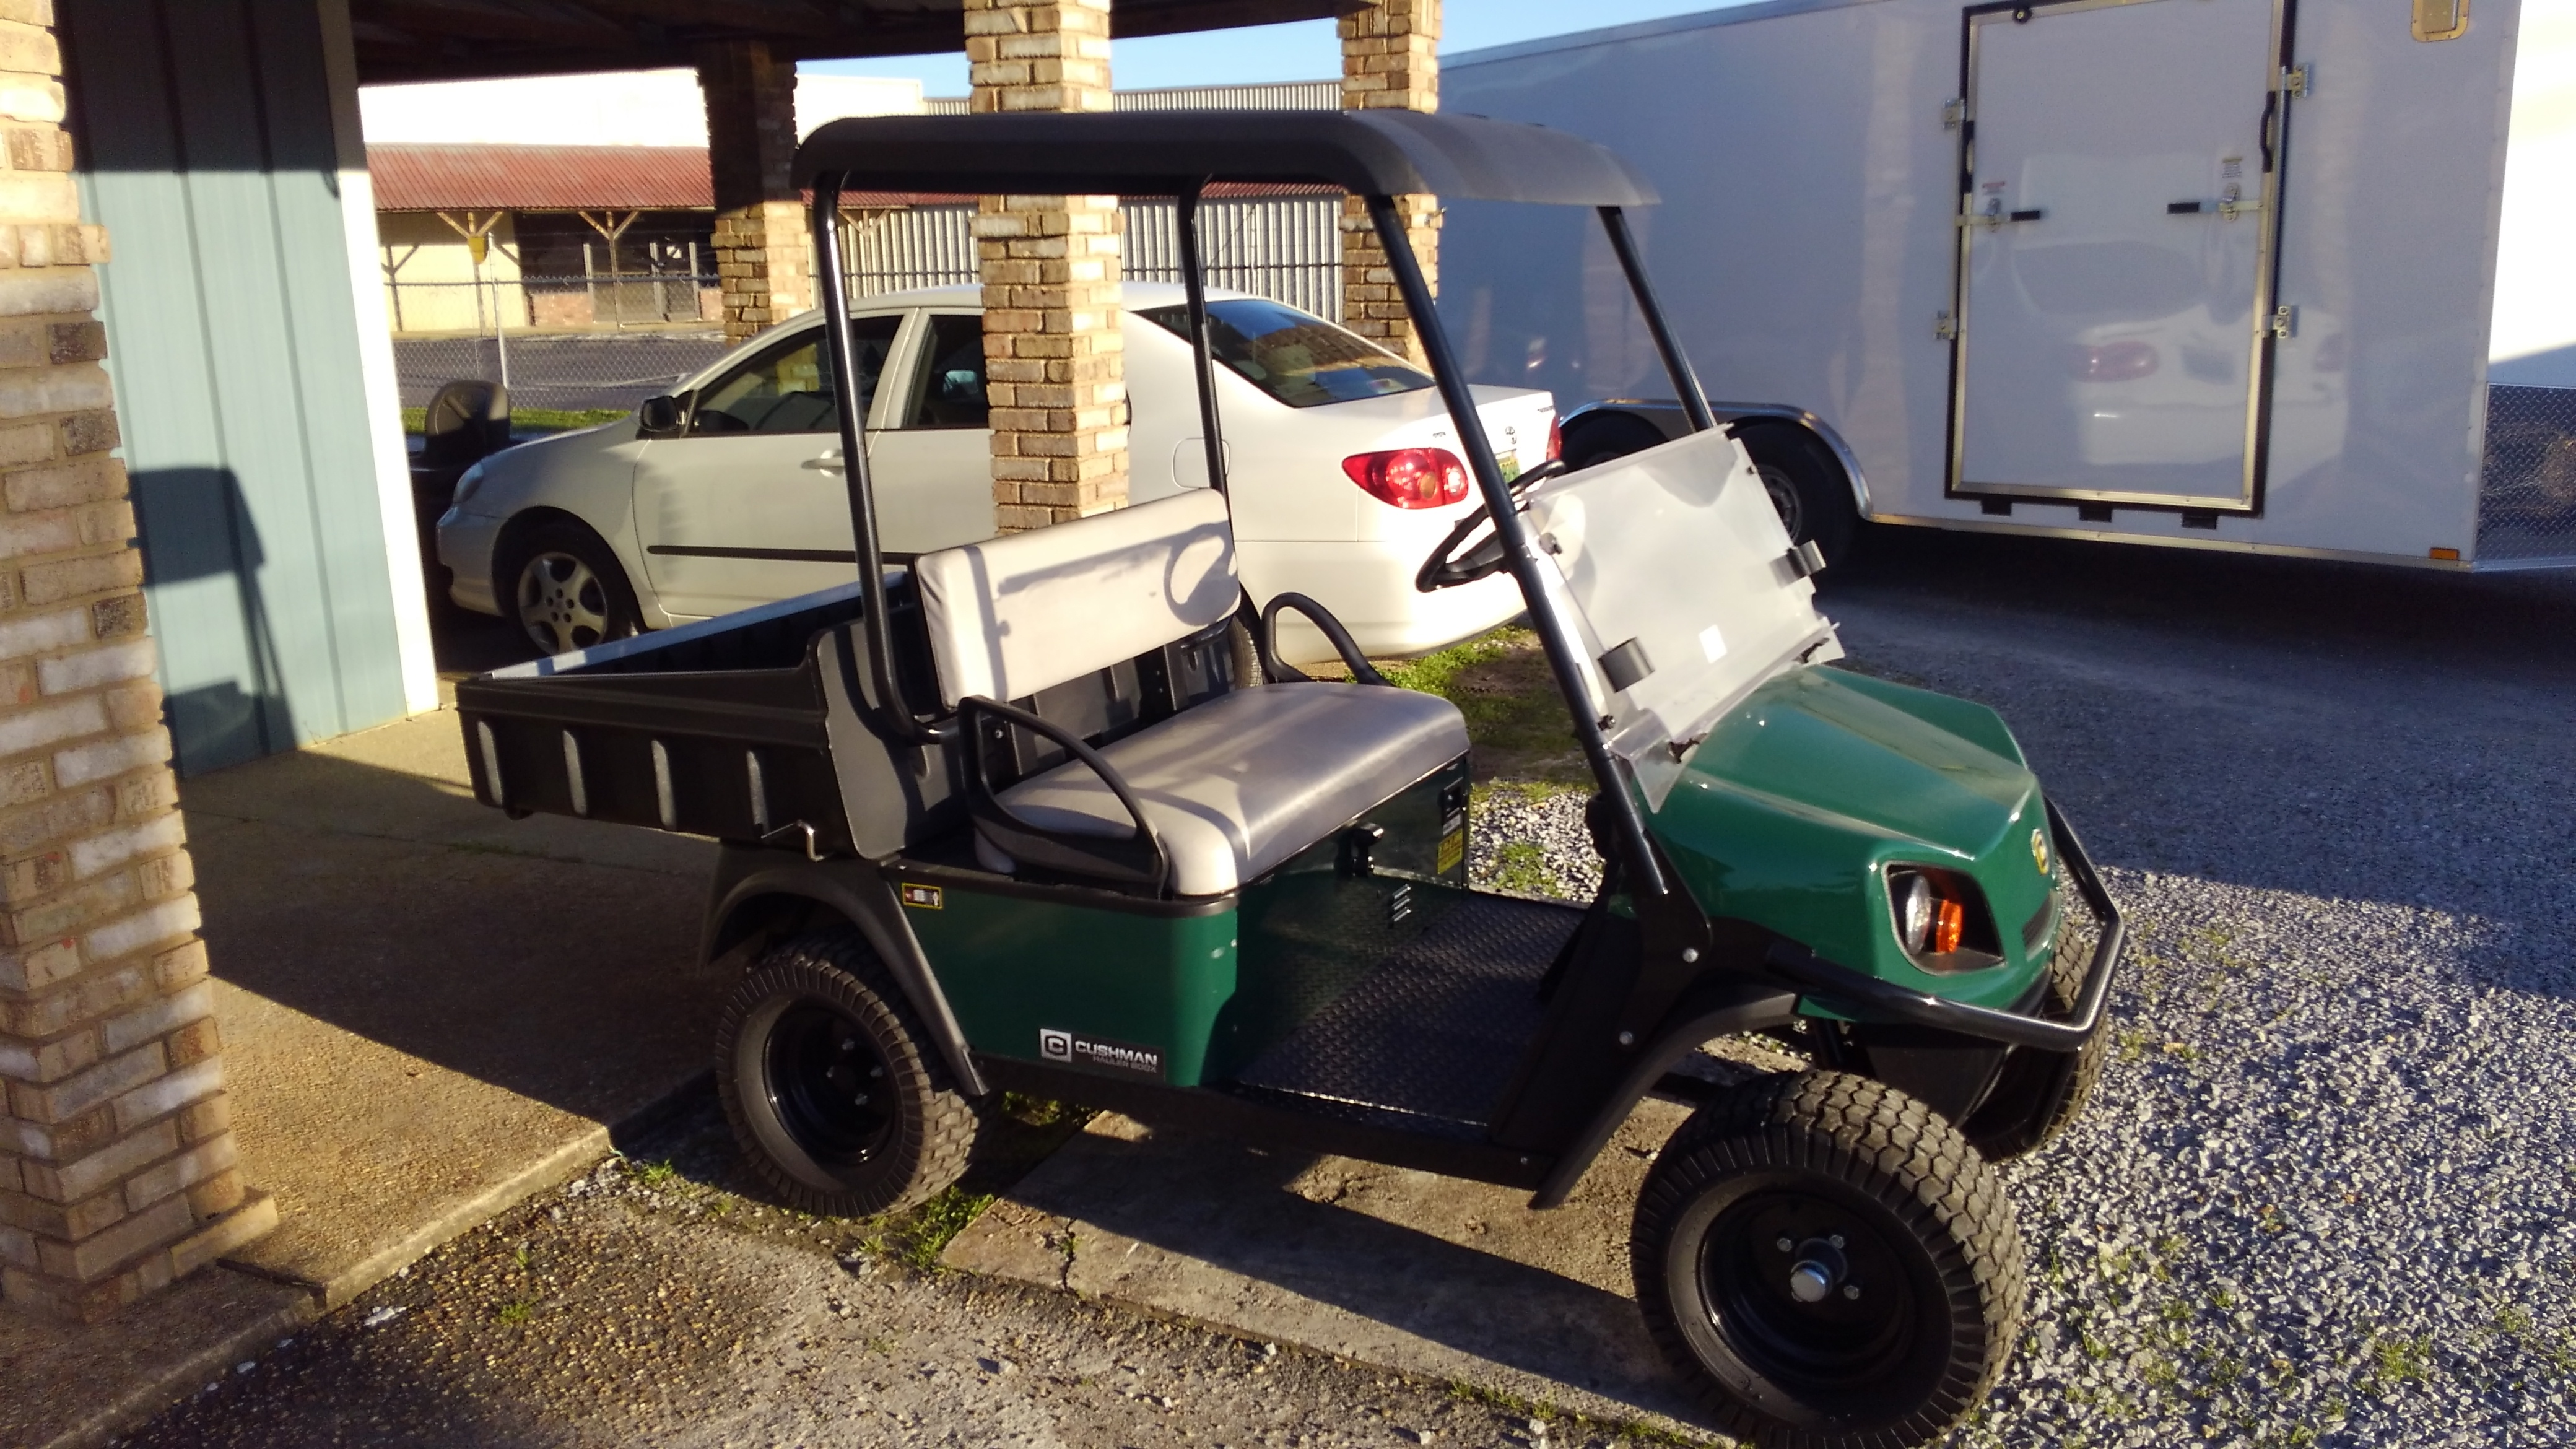 TNT Outfitters Golf Carts, Trailers, Truck Accessories » Golf Carts